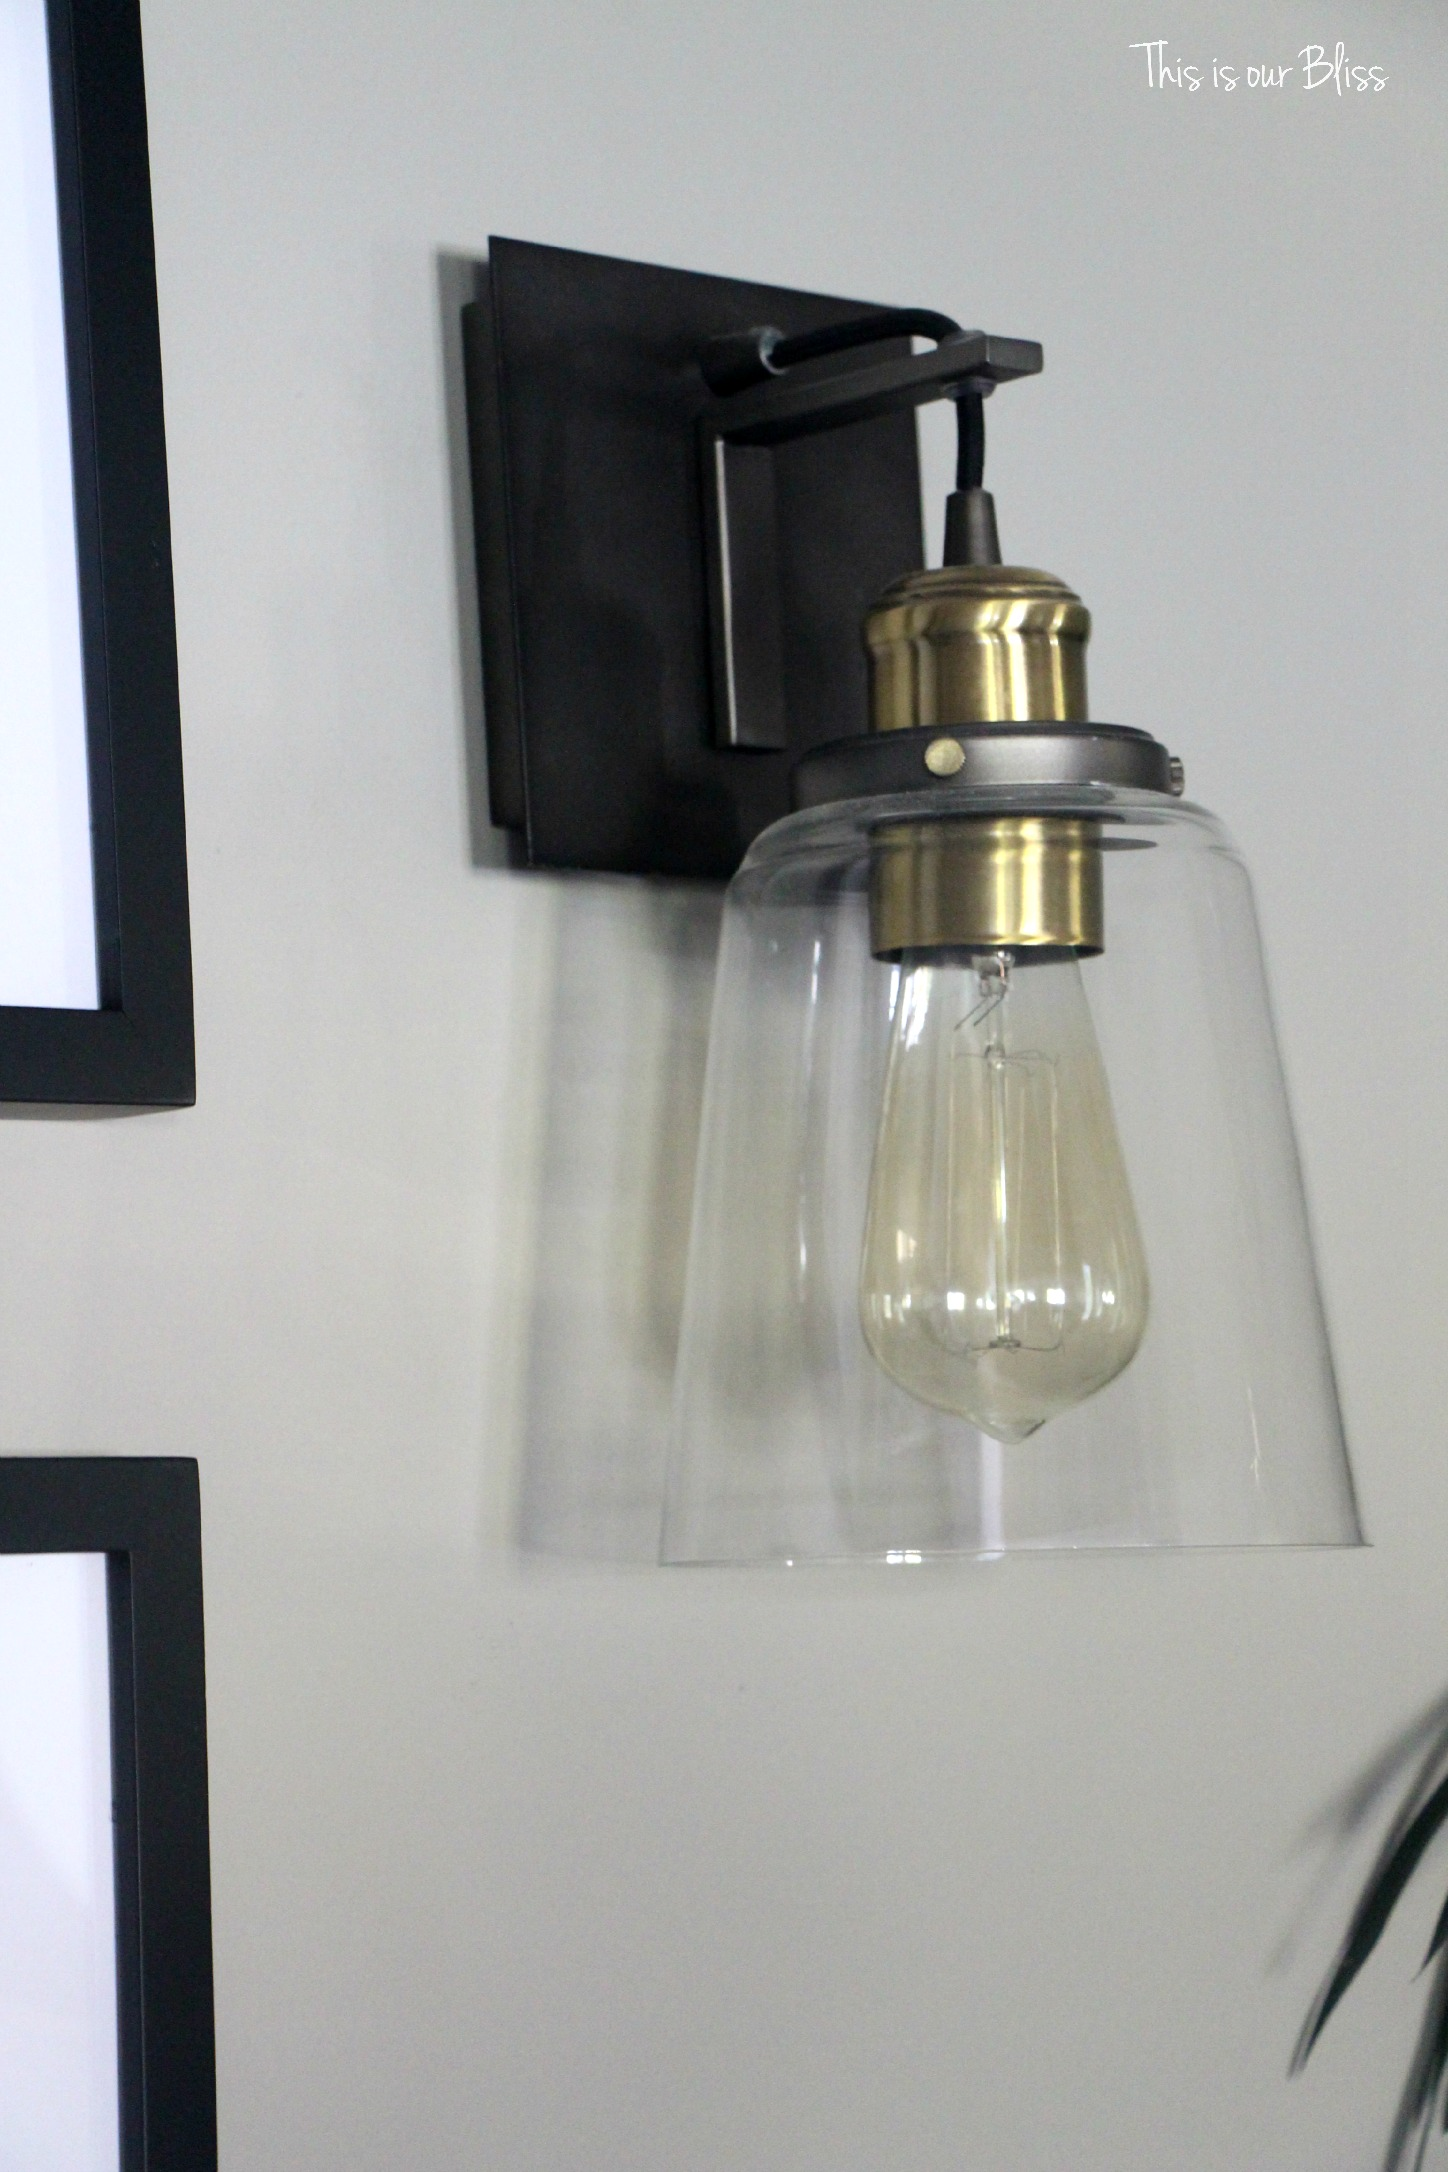 TIOB basement project industrial sconces - This is our bliss - Sherwin Williams wall color